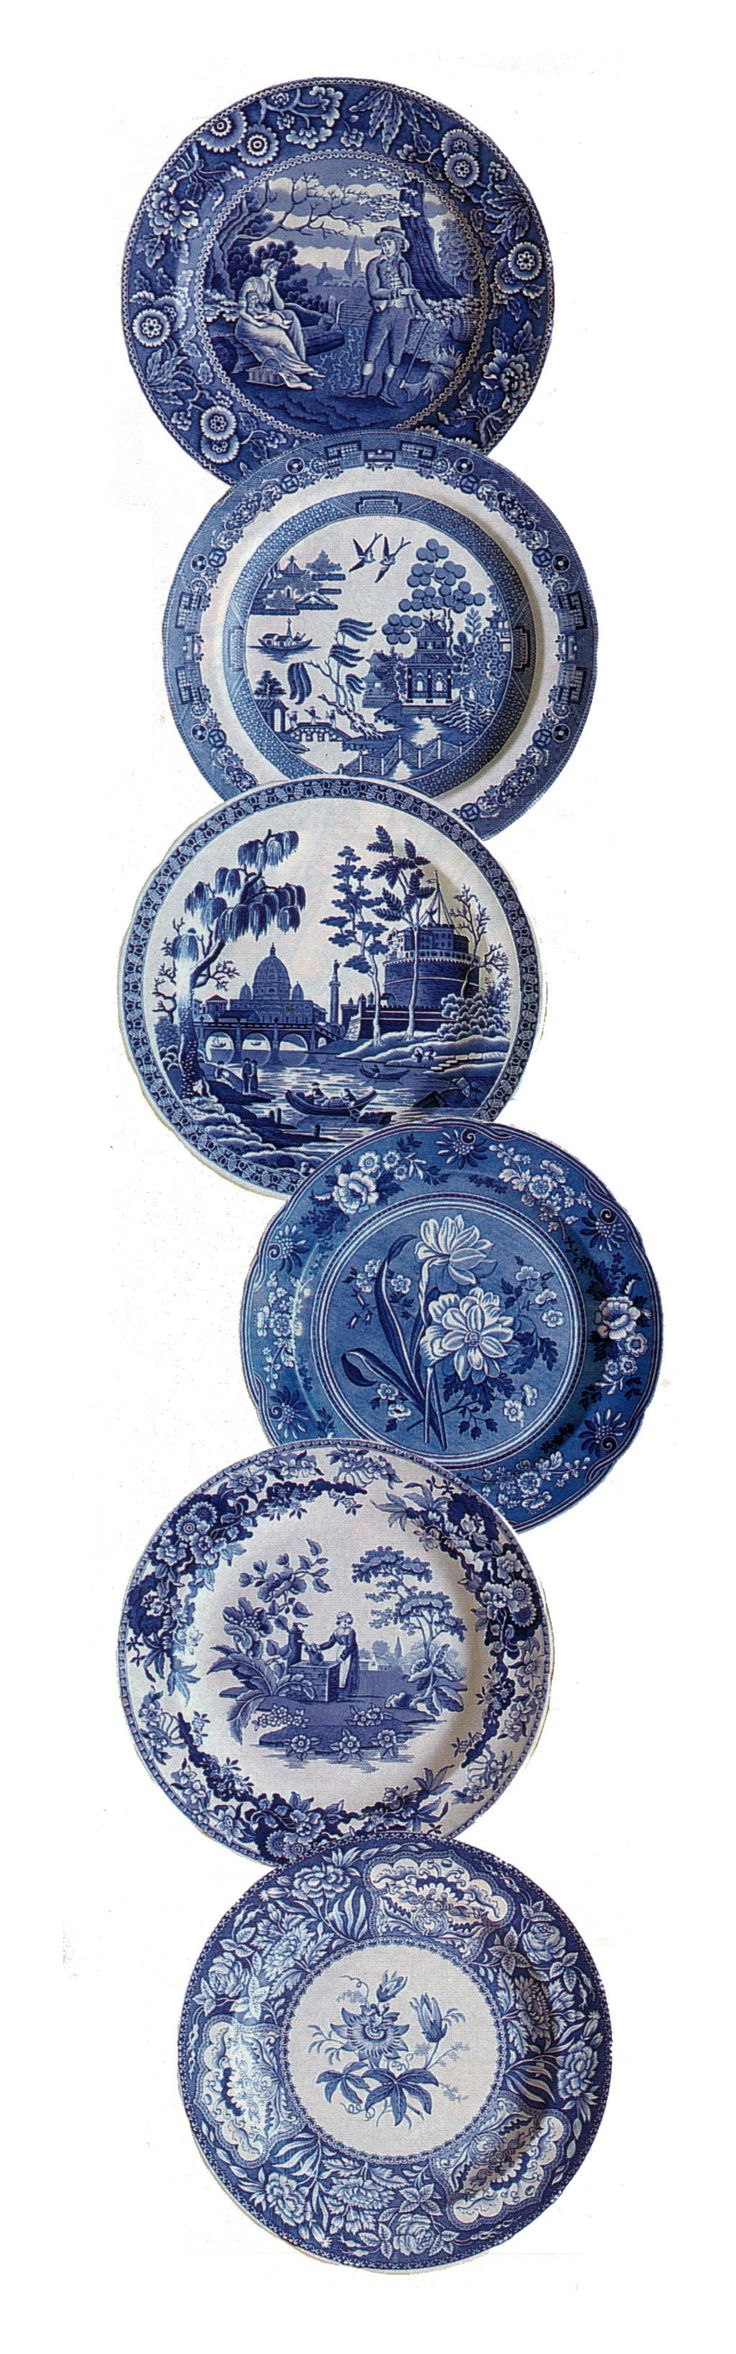 872 best Blue and White images on Pinterest | Blue and white ...